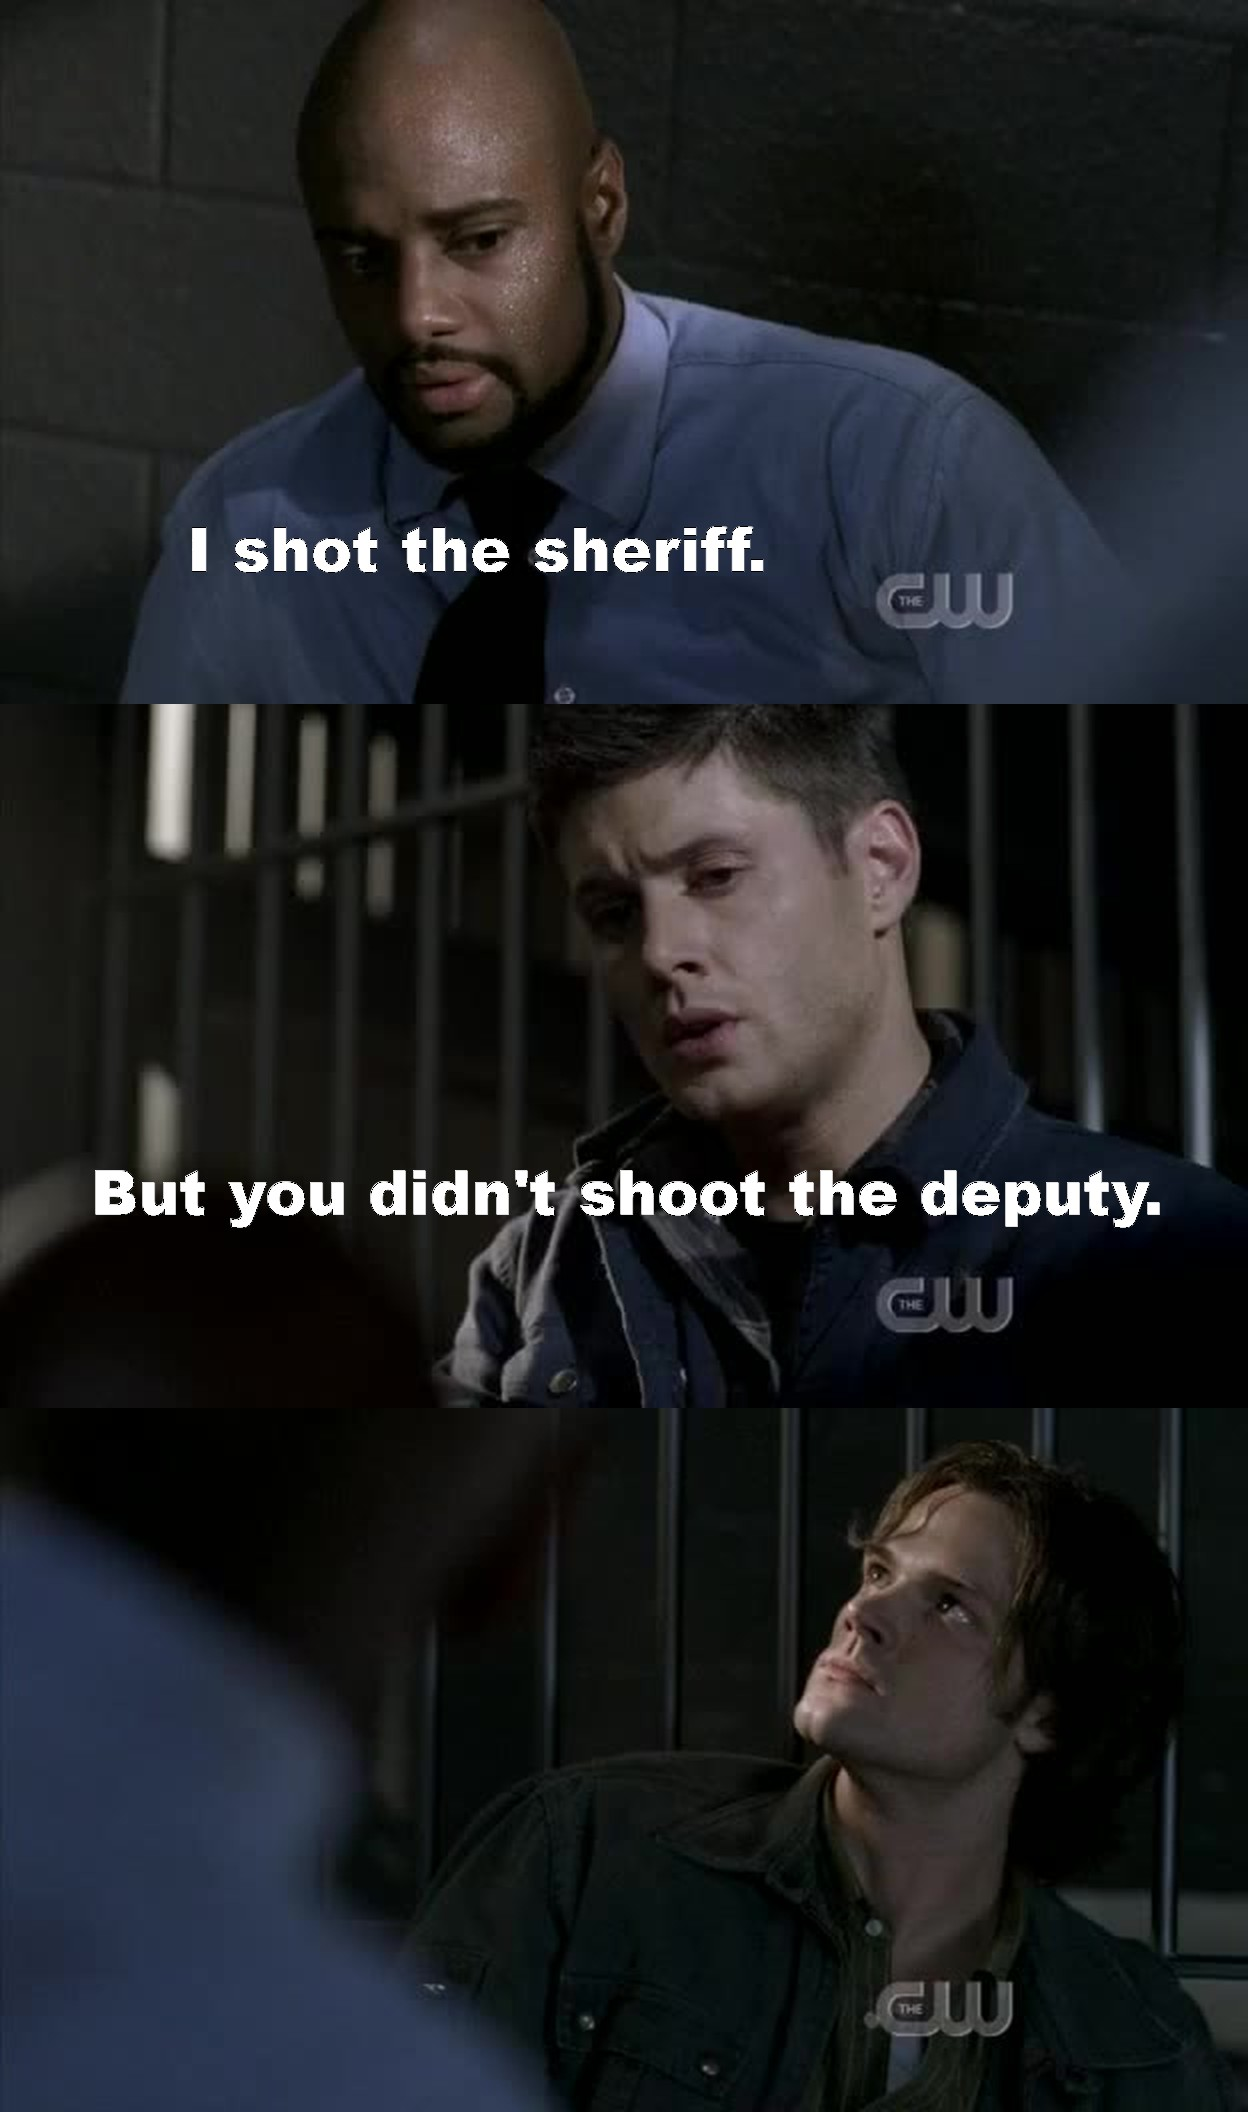 As soon as he said I shot the sheriff I knew what Dean was going to say and he did not disappoint. Neither did Sam. He has the best facial expressions to show how he feels toward his brother. It's no wonder I love this show.????